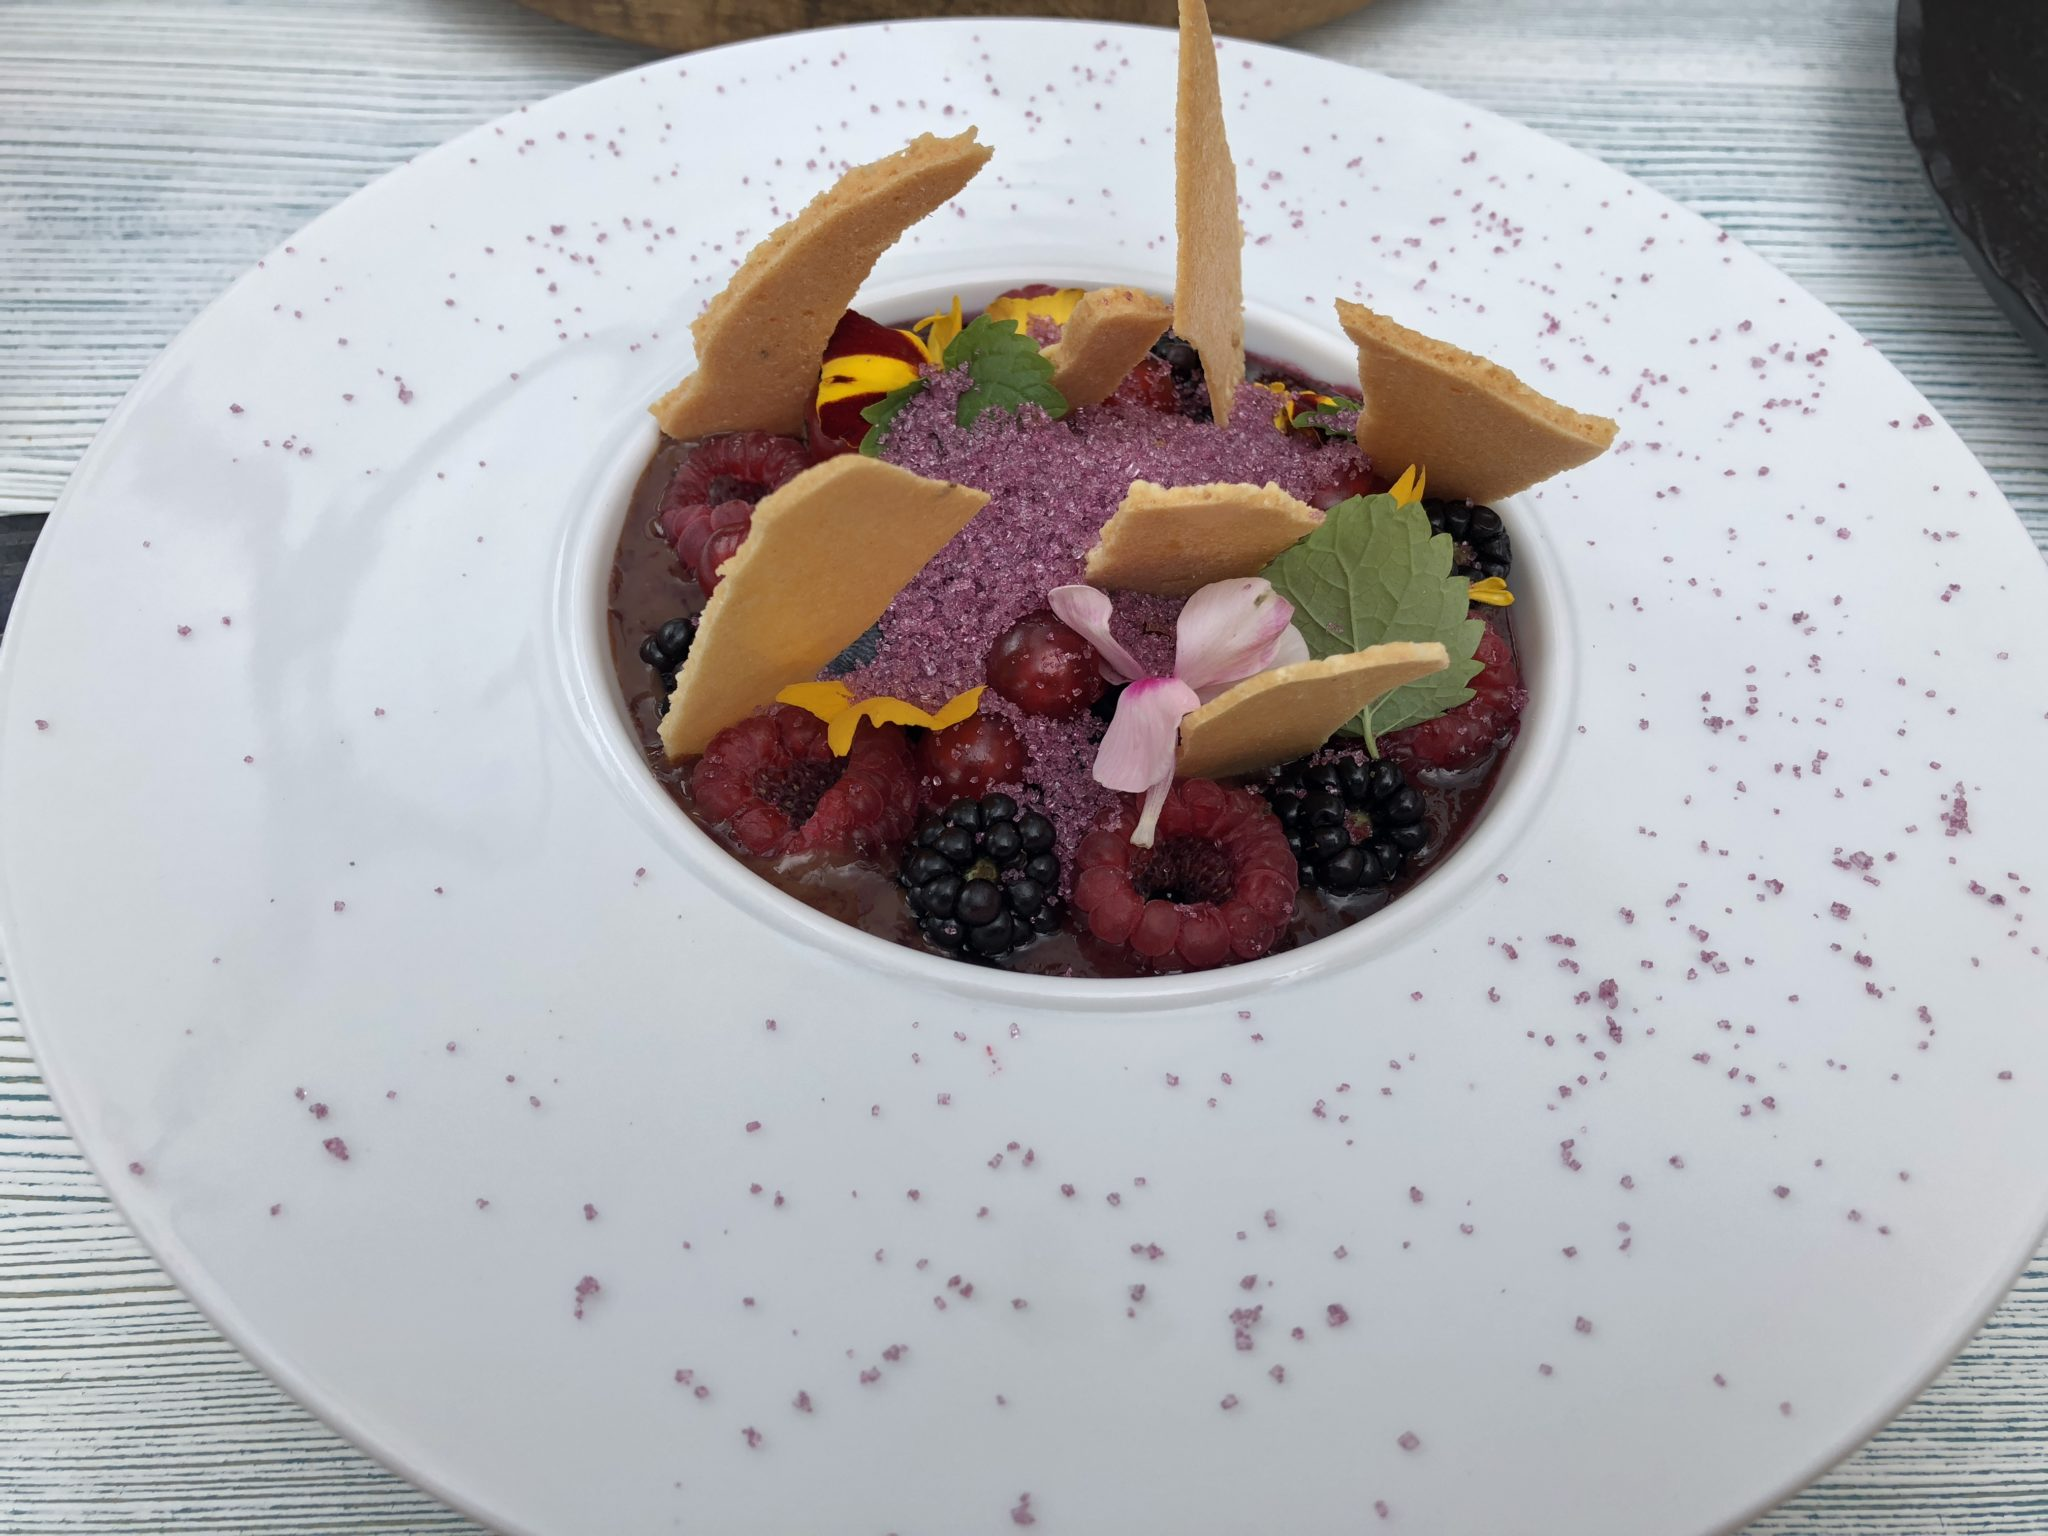 Chocolate & berry mousse